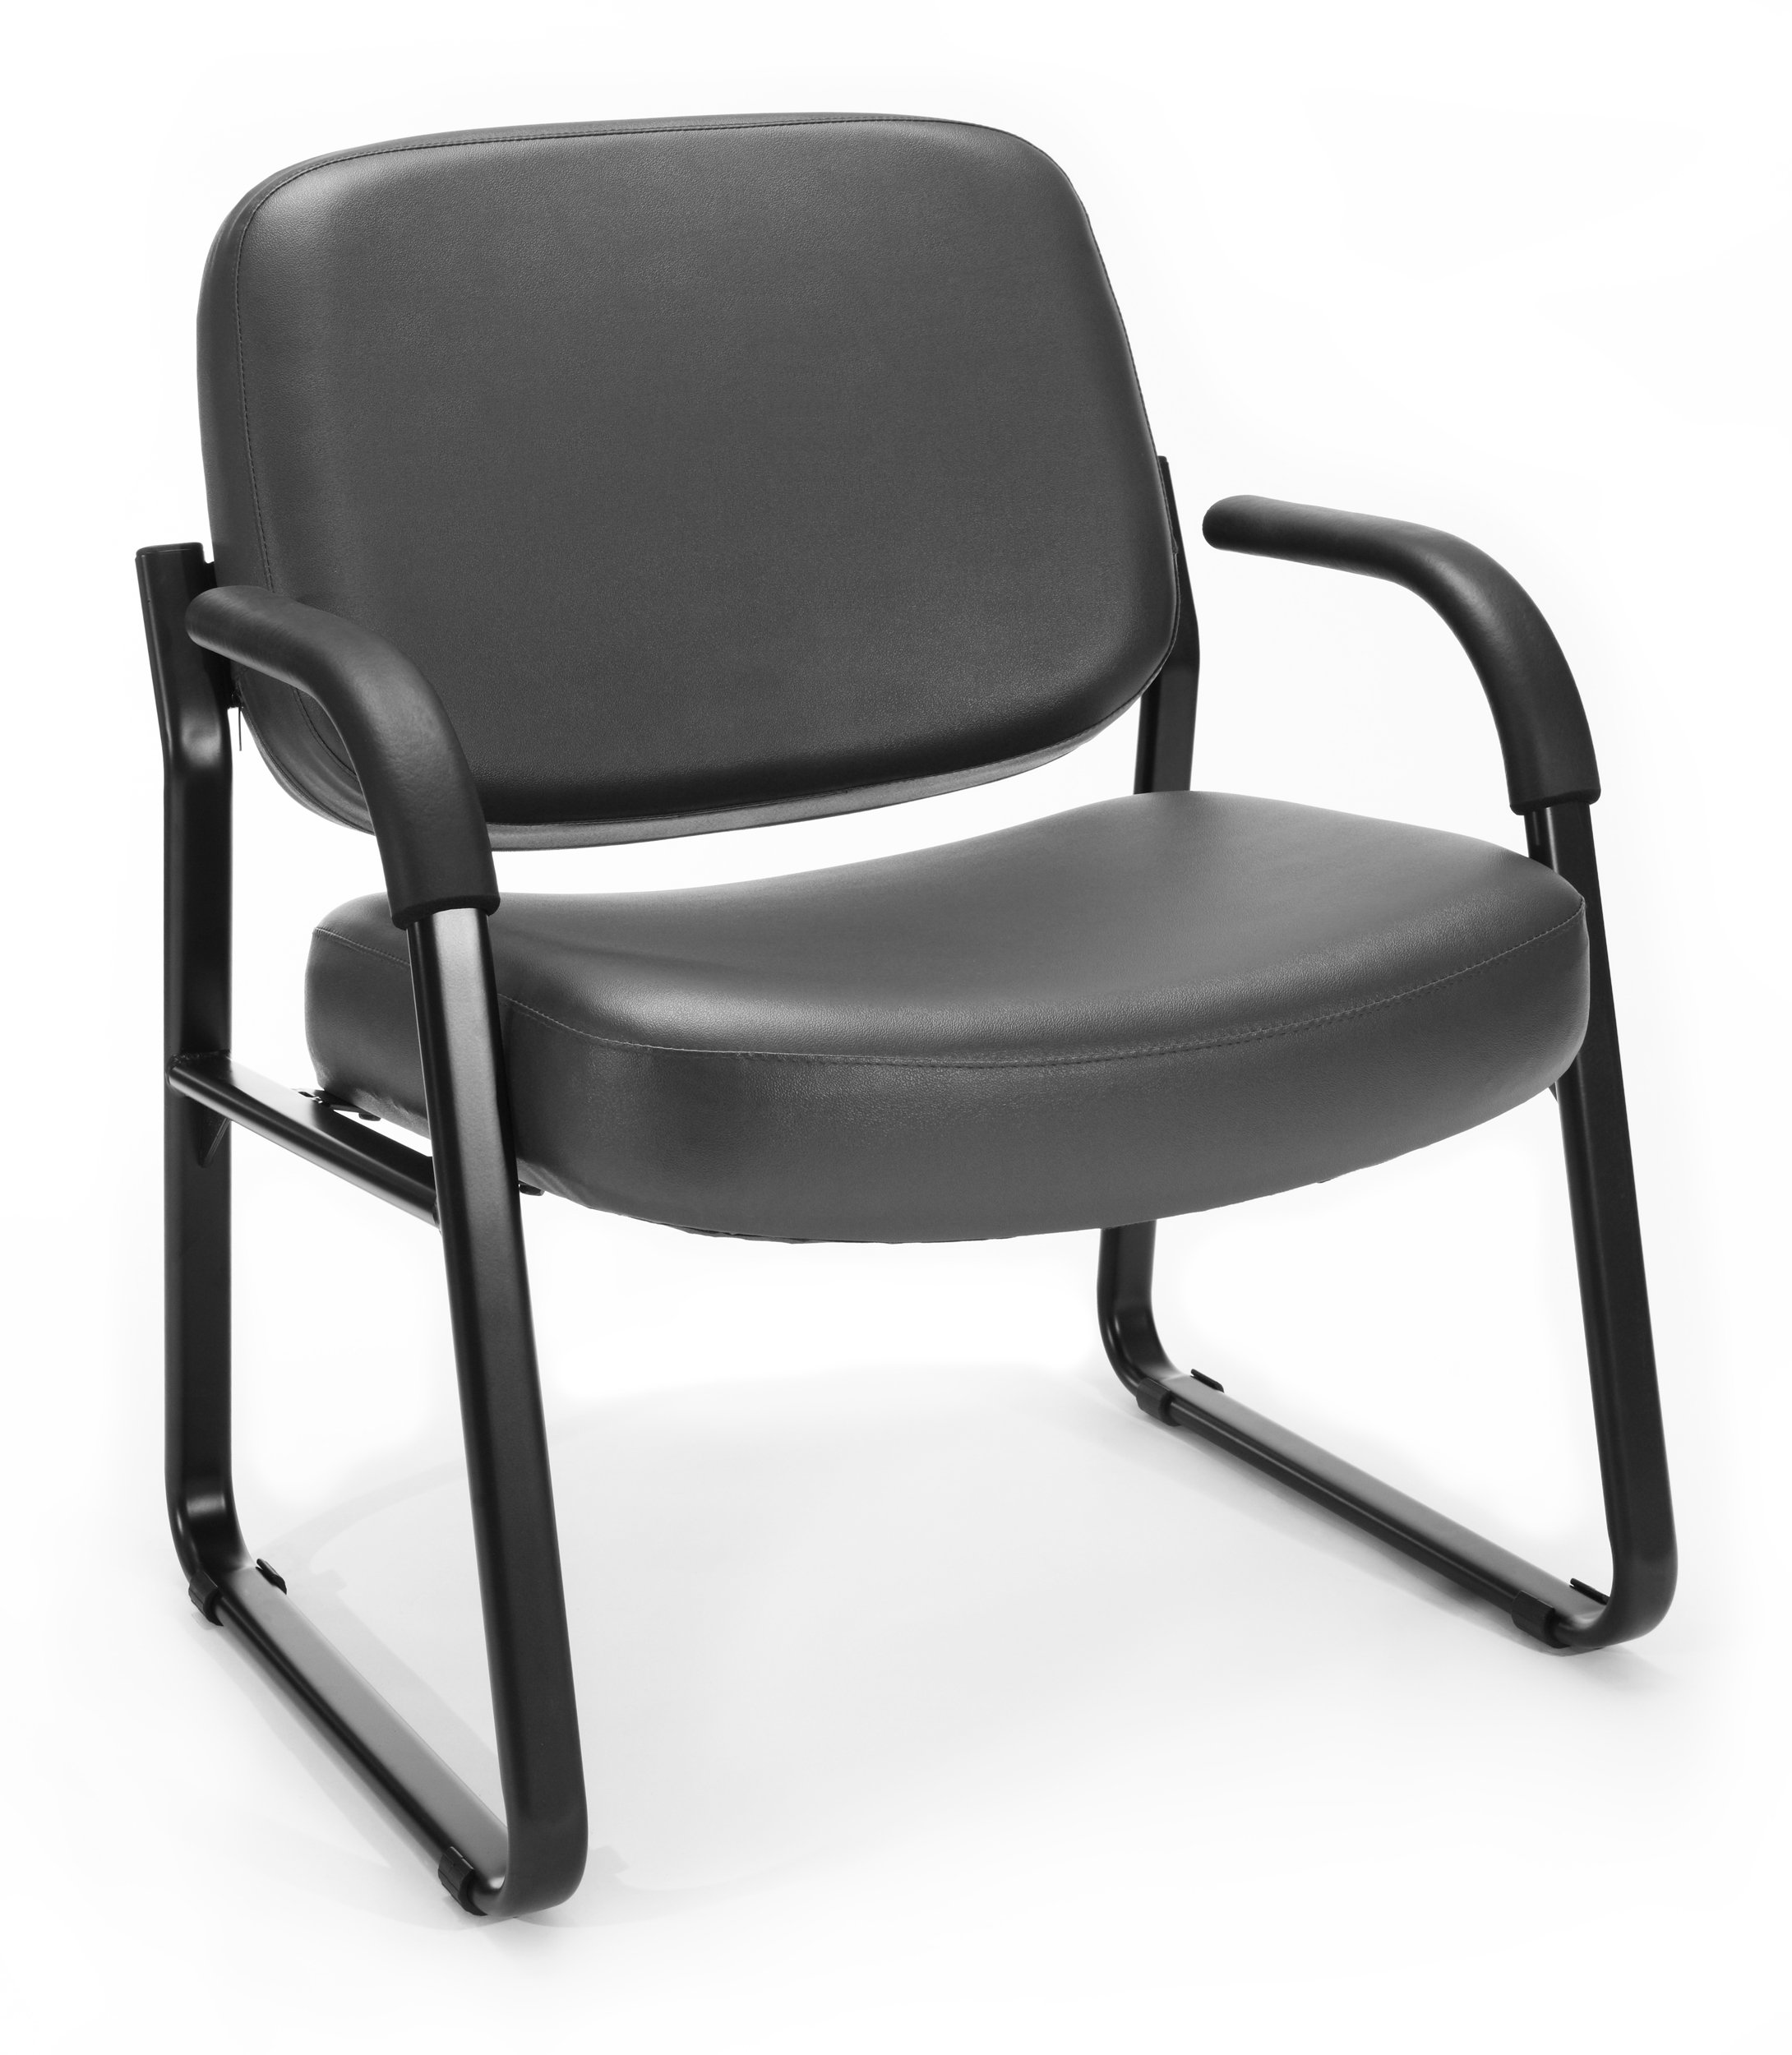 OFM Big and Tall Reception Chair with Arms - Anti-Microbial/Anti-Bacterial Vinyl Mid-Back Guest Chair, Charcoal (407-VAM)